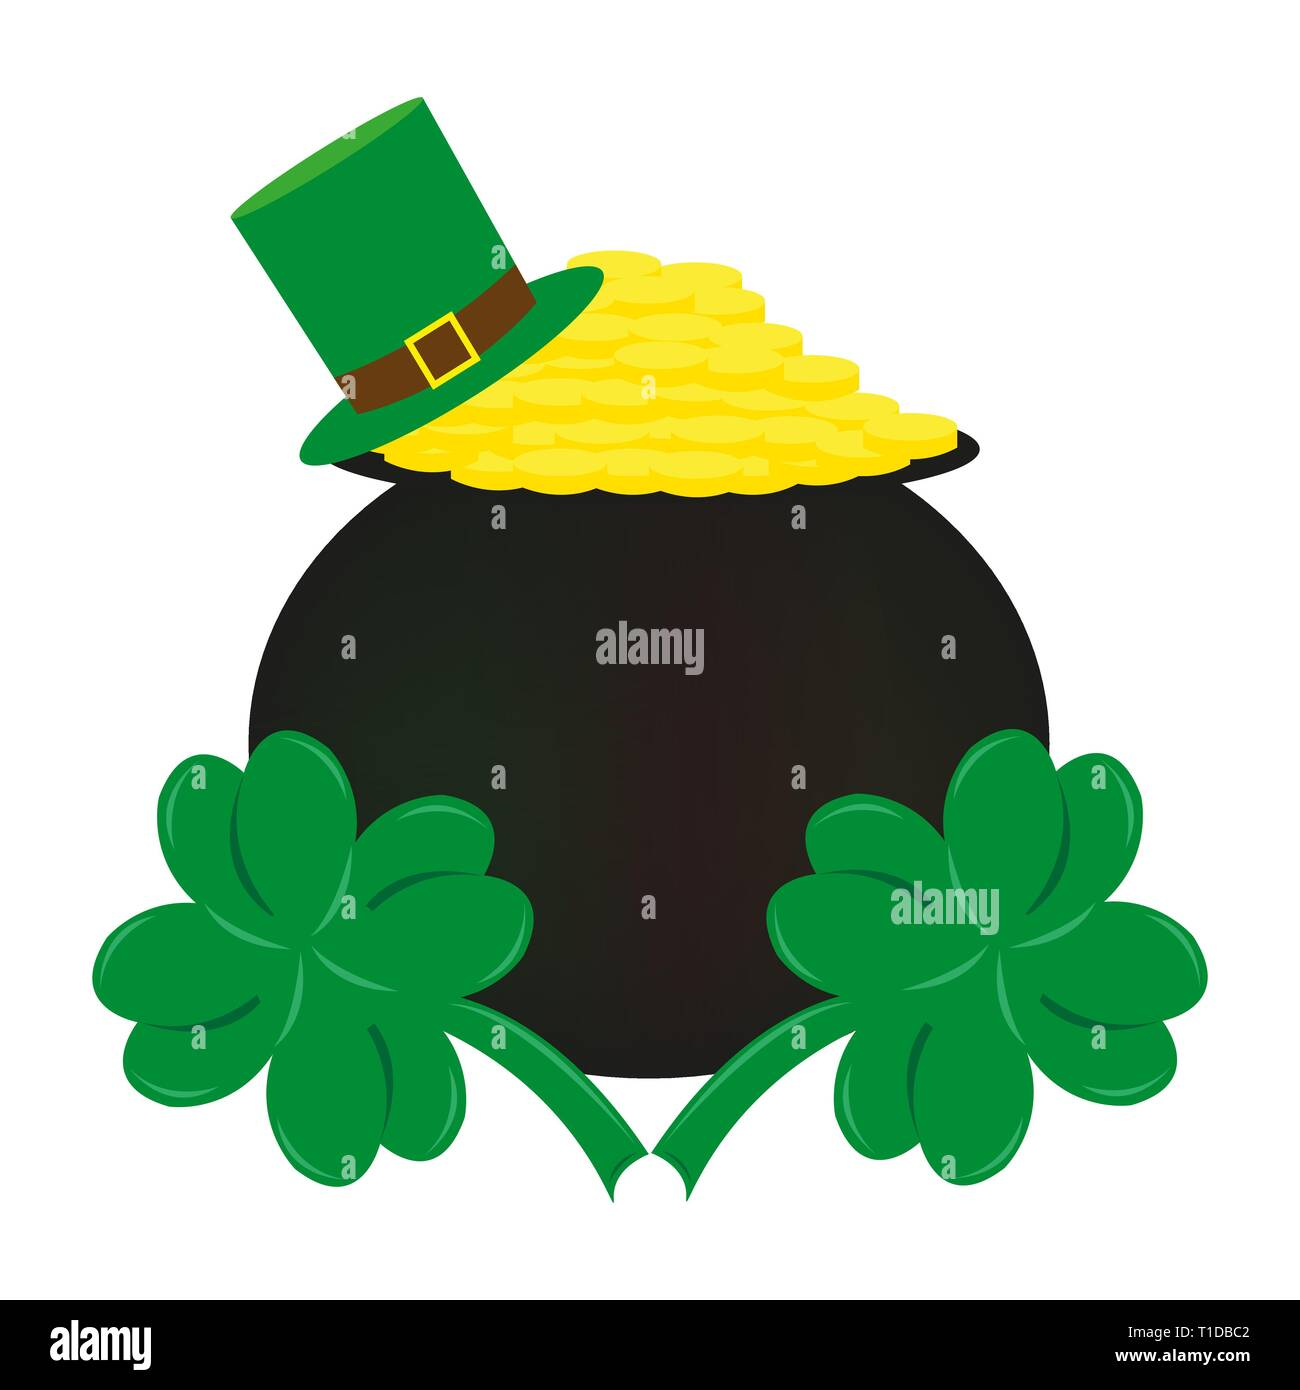 f4ddeb4f4 Coins and clover the symbol of St. Patrick's Day vector illustration - Stock  Image